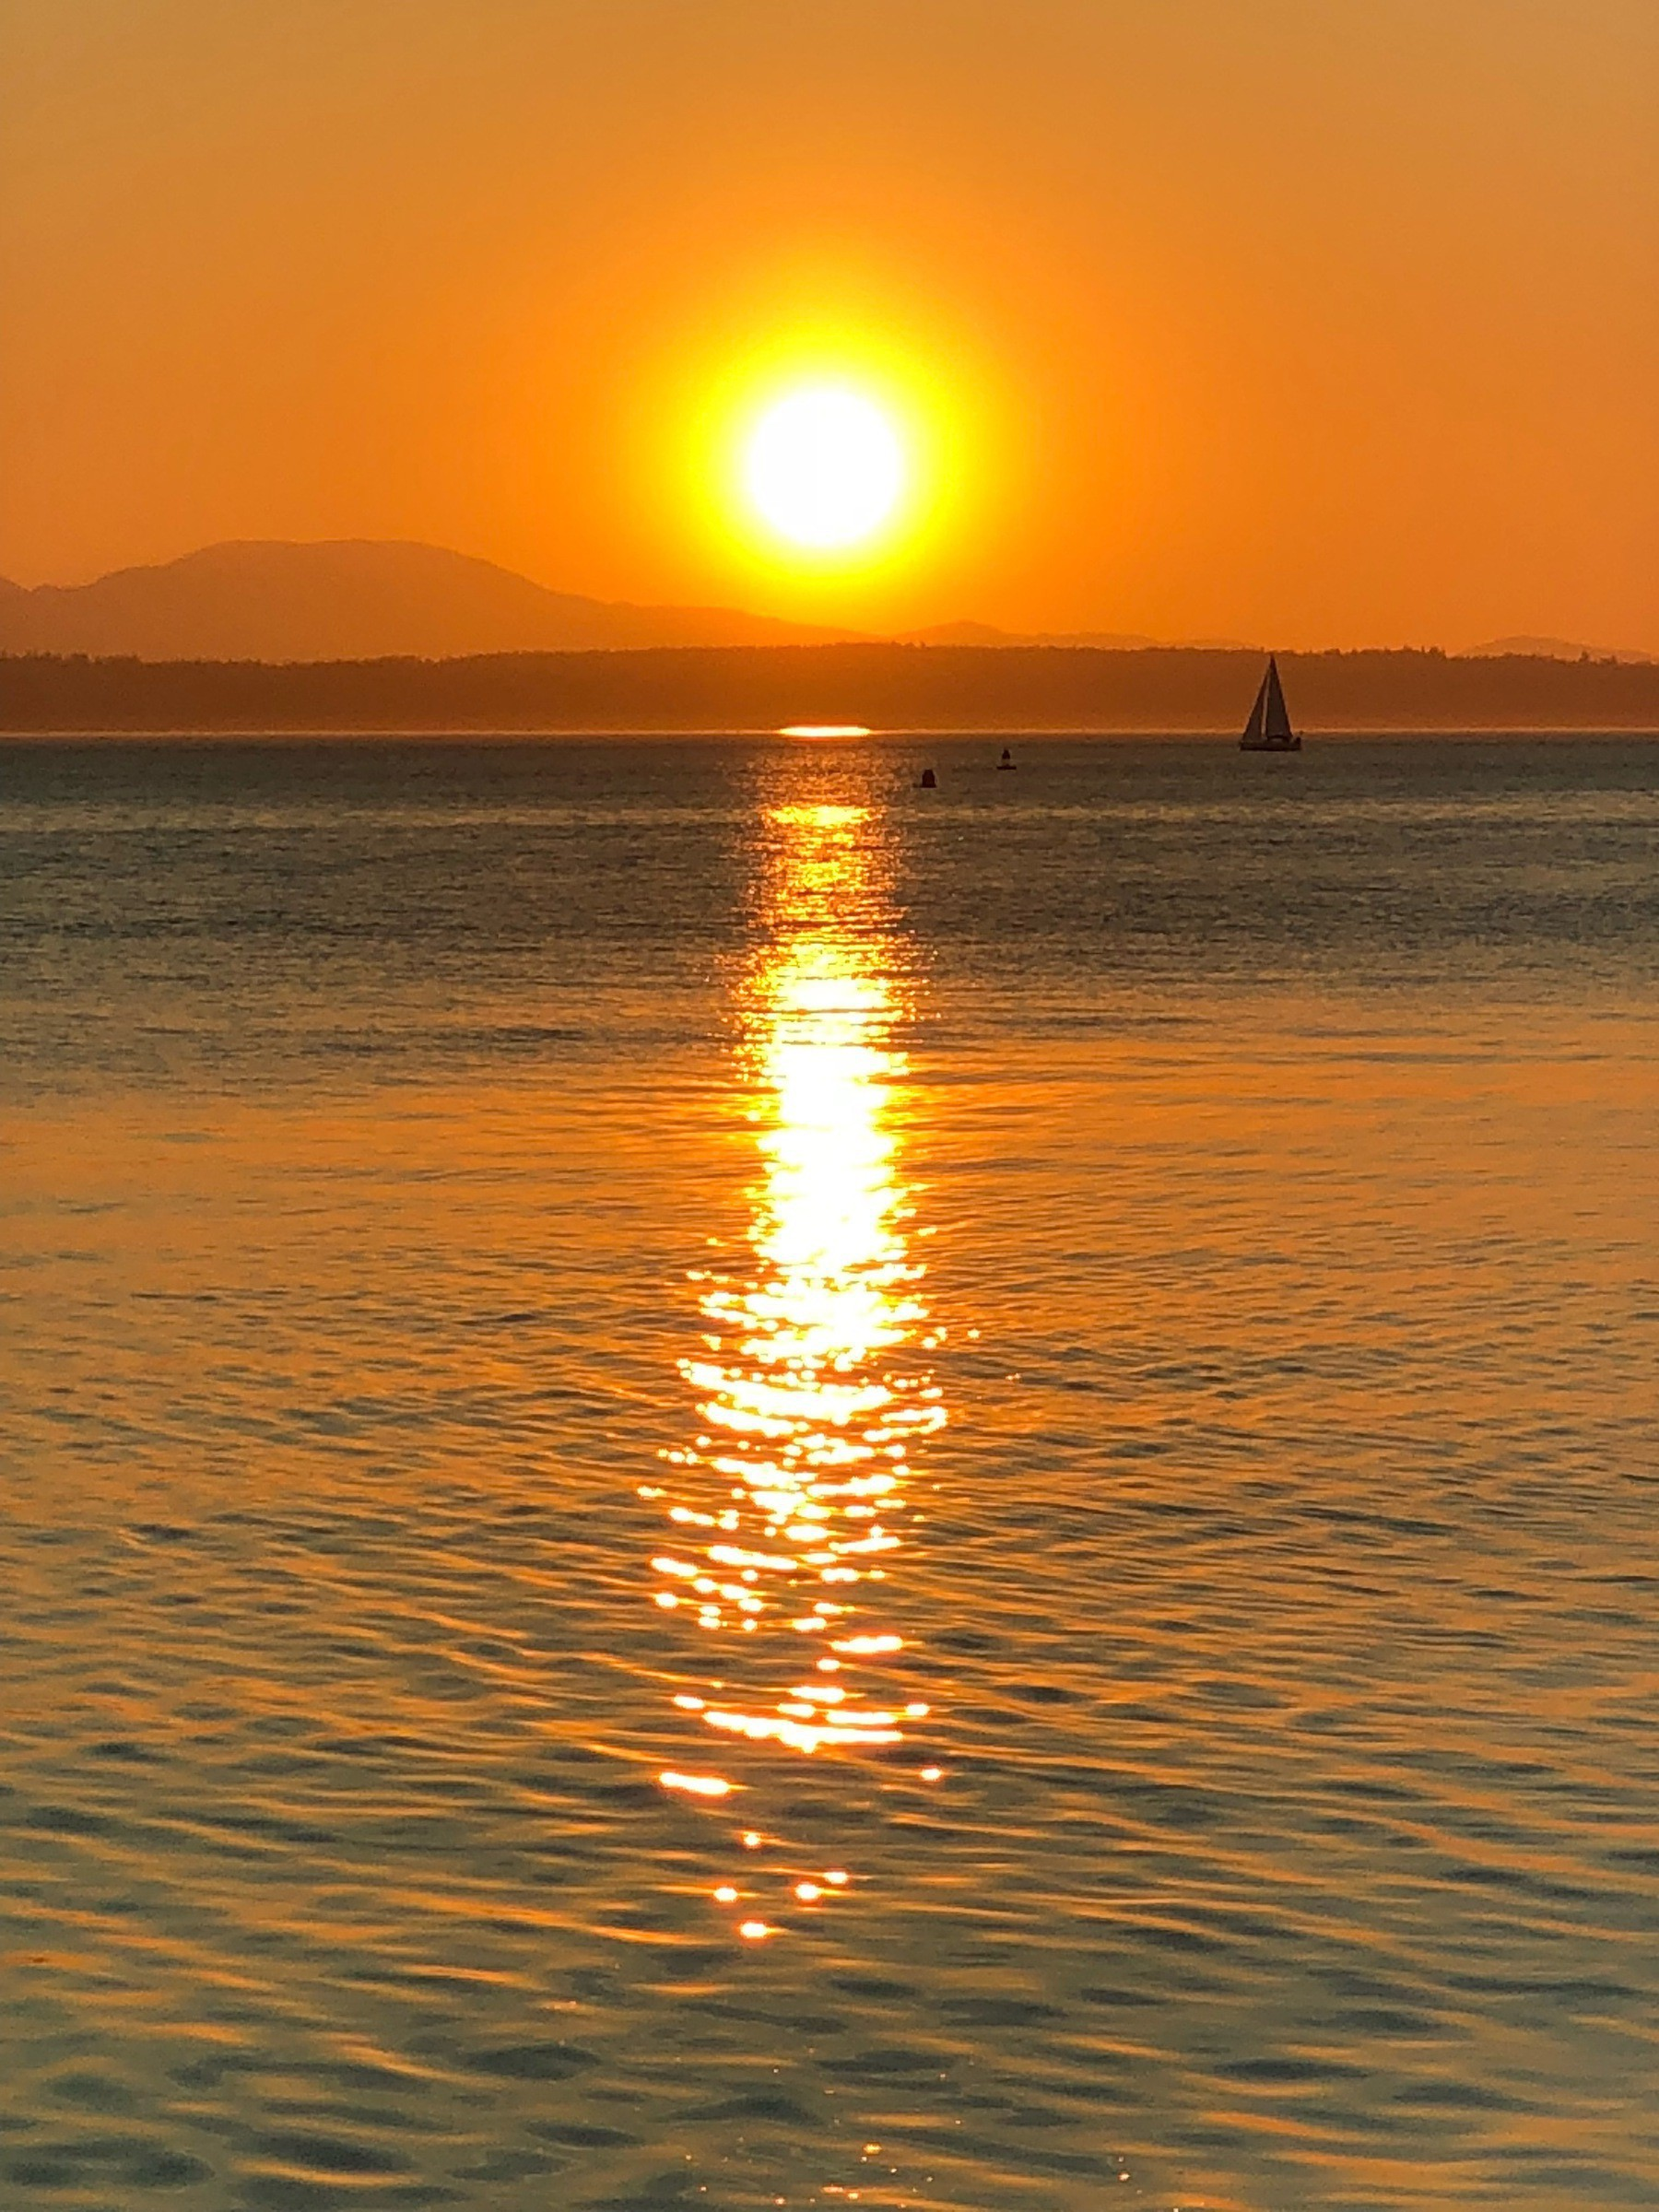 The sun is setting over the Olympics. There are sailboats in Puget Sound.